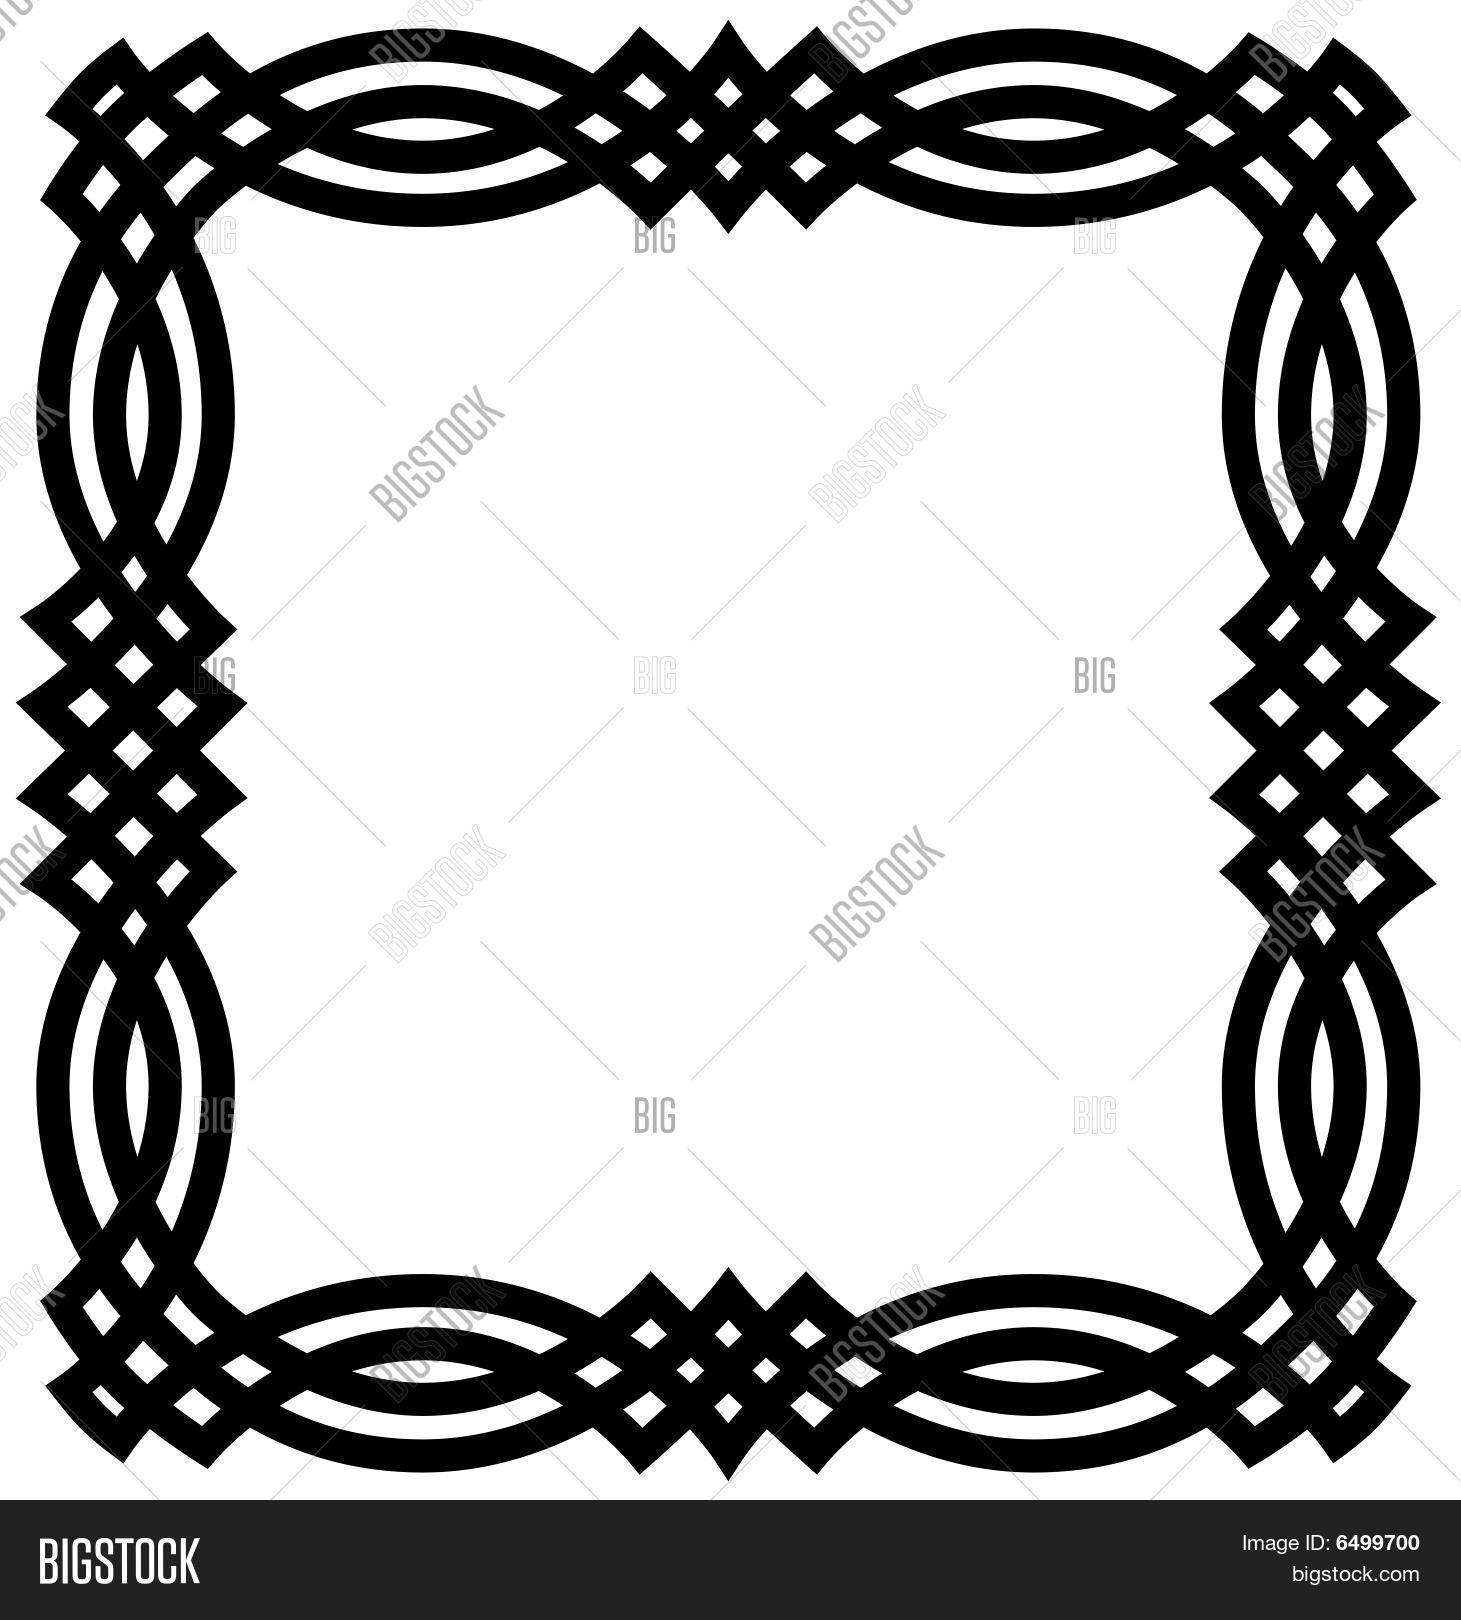 celtic knot border vector photo free trial bigstock rh bigstockphoto com celtic circle border vector free celtic pattern border vector